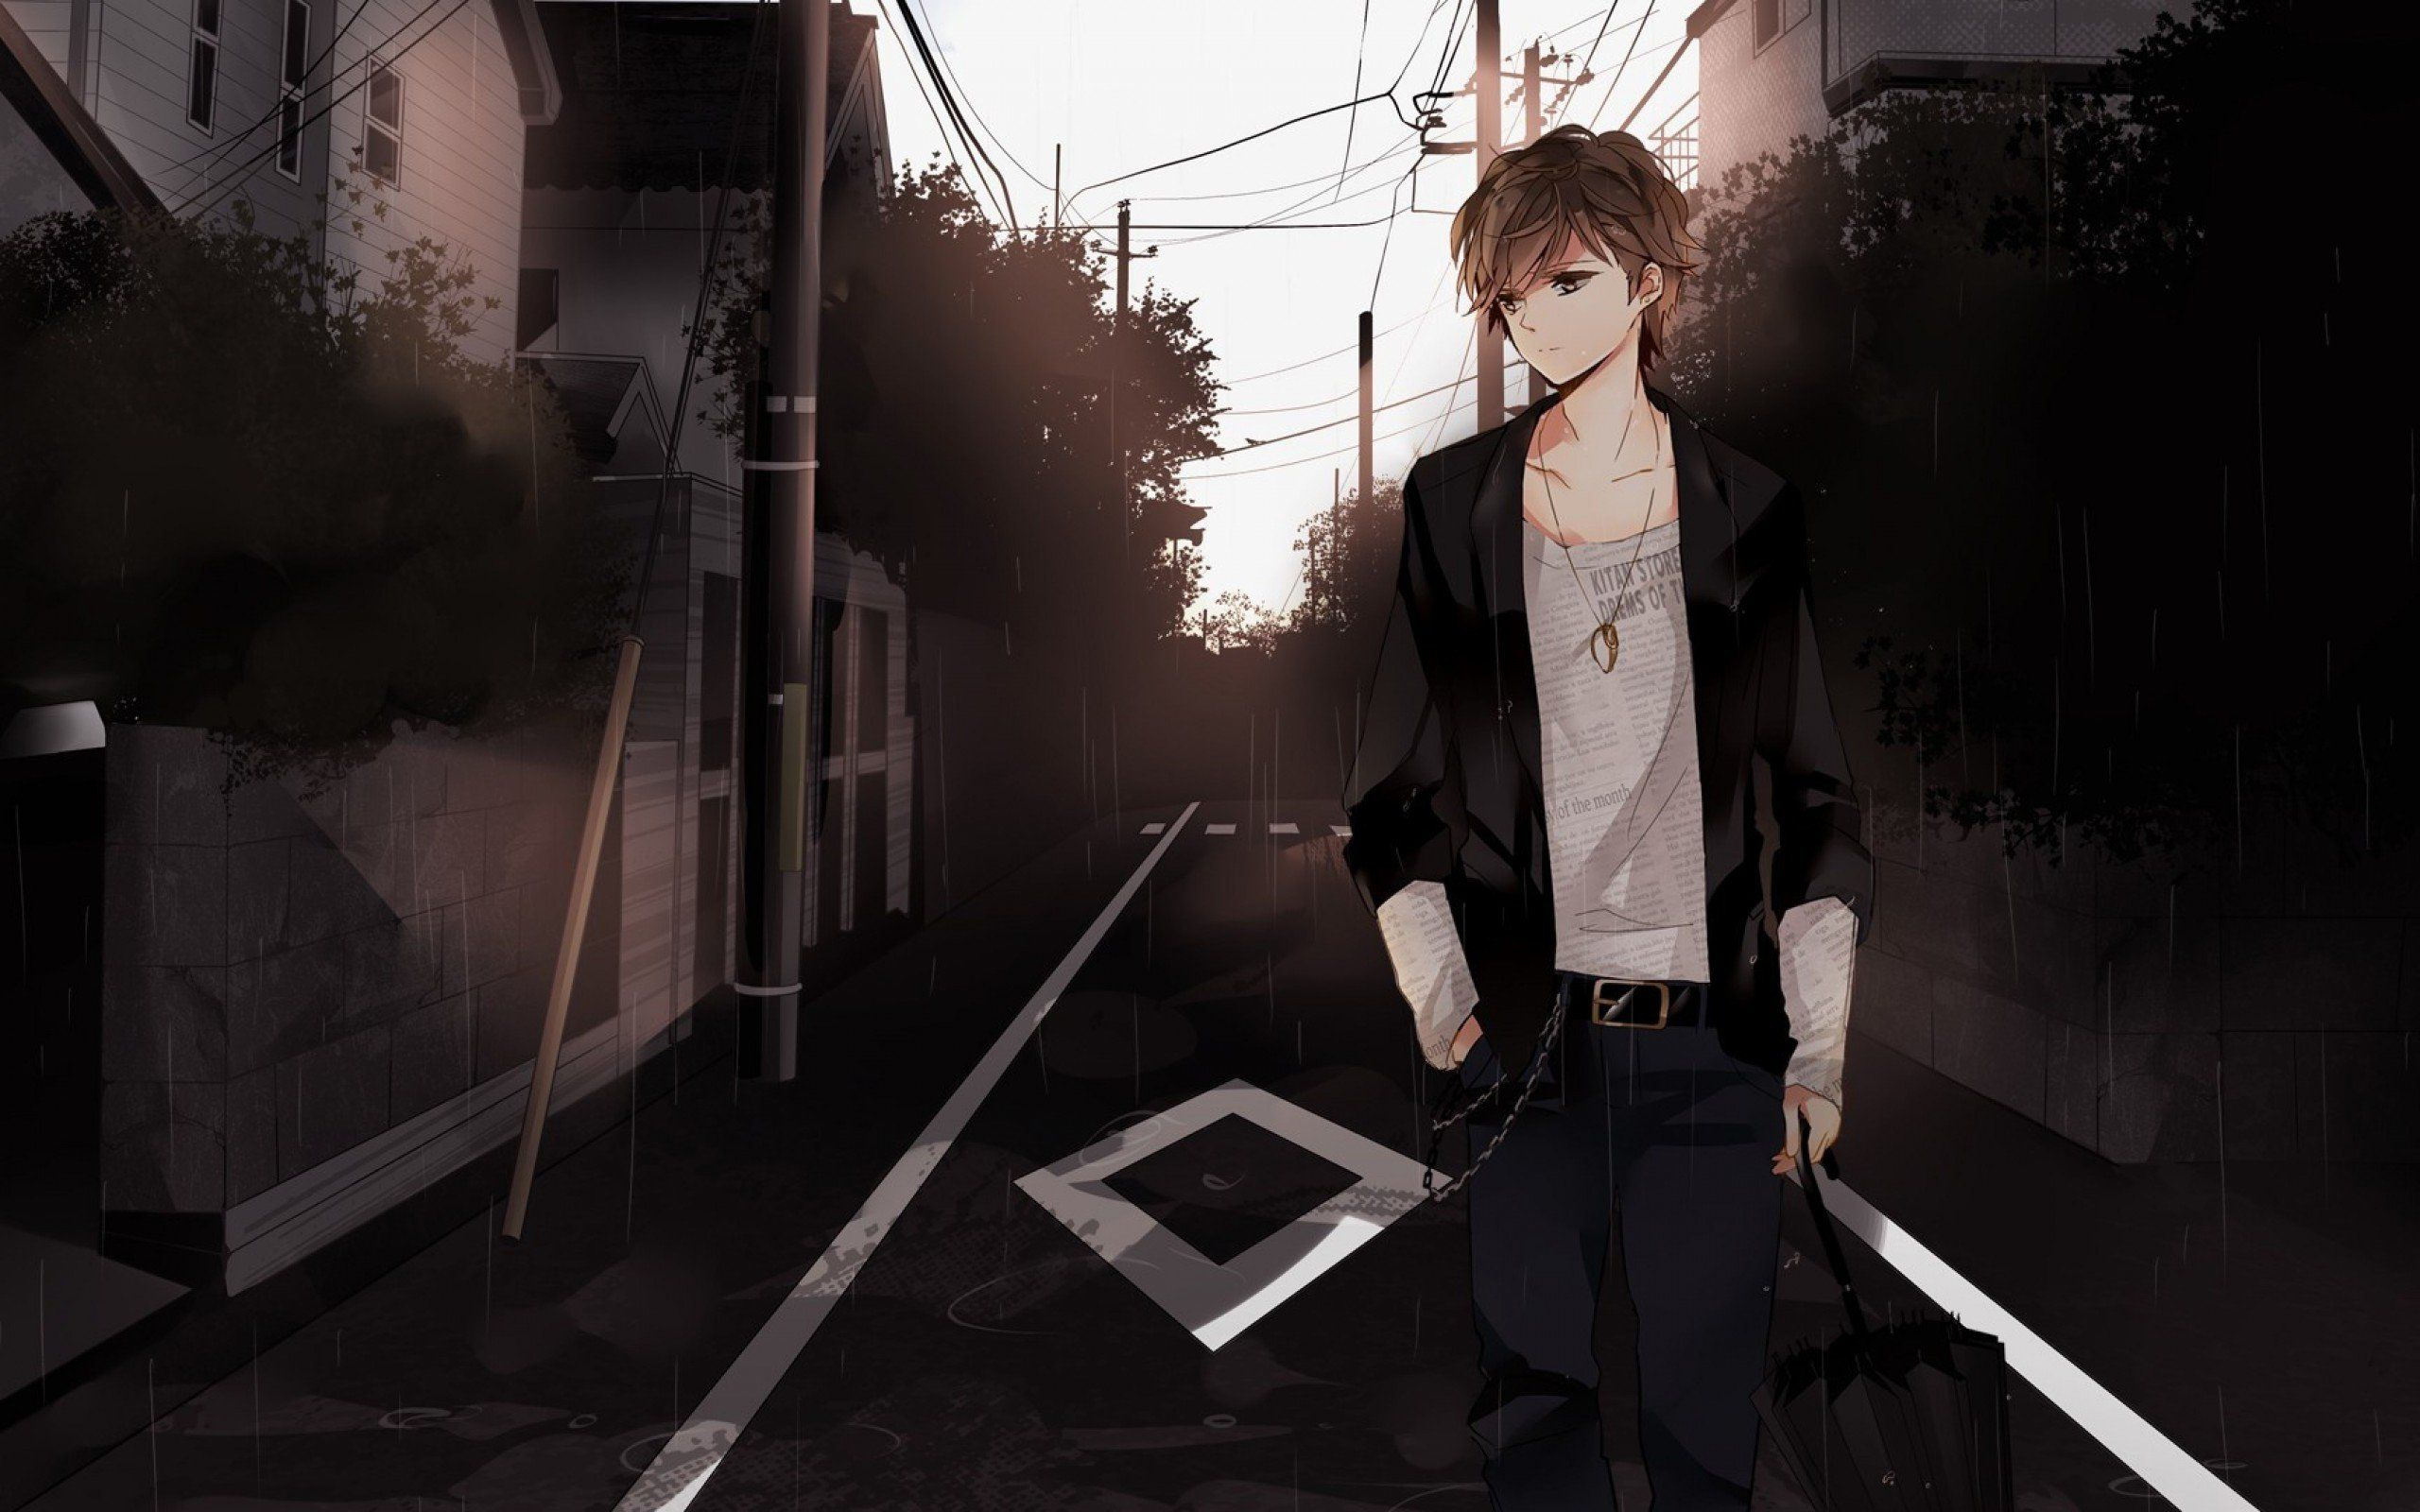 Anime Boy Brown Hair Brown Eyes Walk Street In 2020 Emo Wallpaper Anime Brown Hair Anime Boy